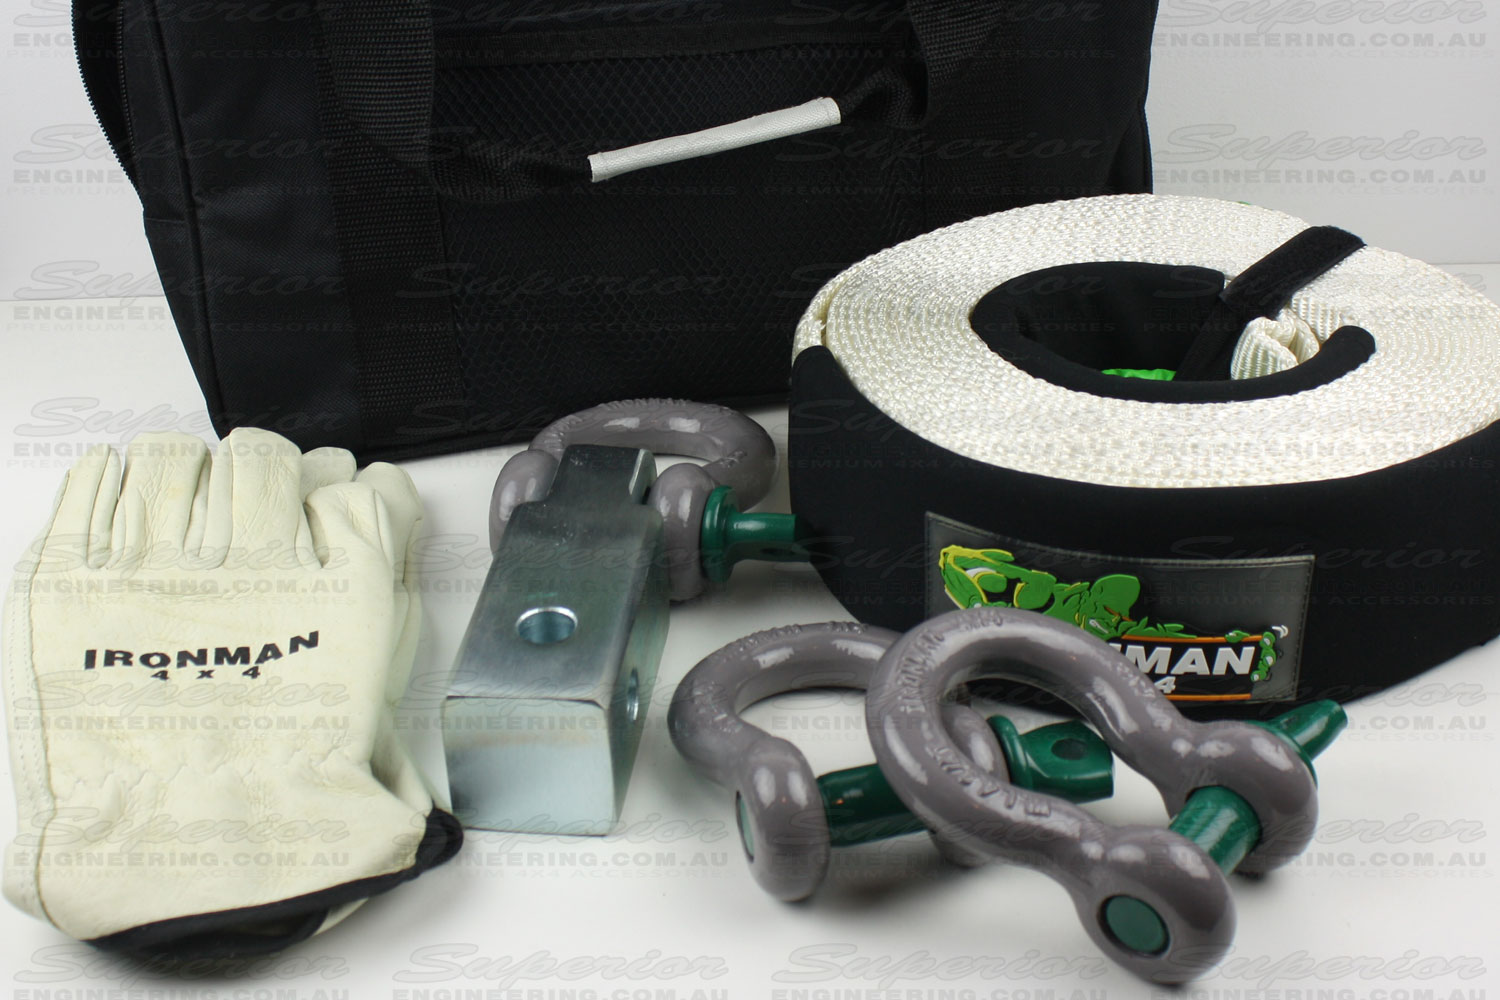 The complete Ironman 4x4 small recovery kit featuring a snatch strap, shackles and gloves